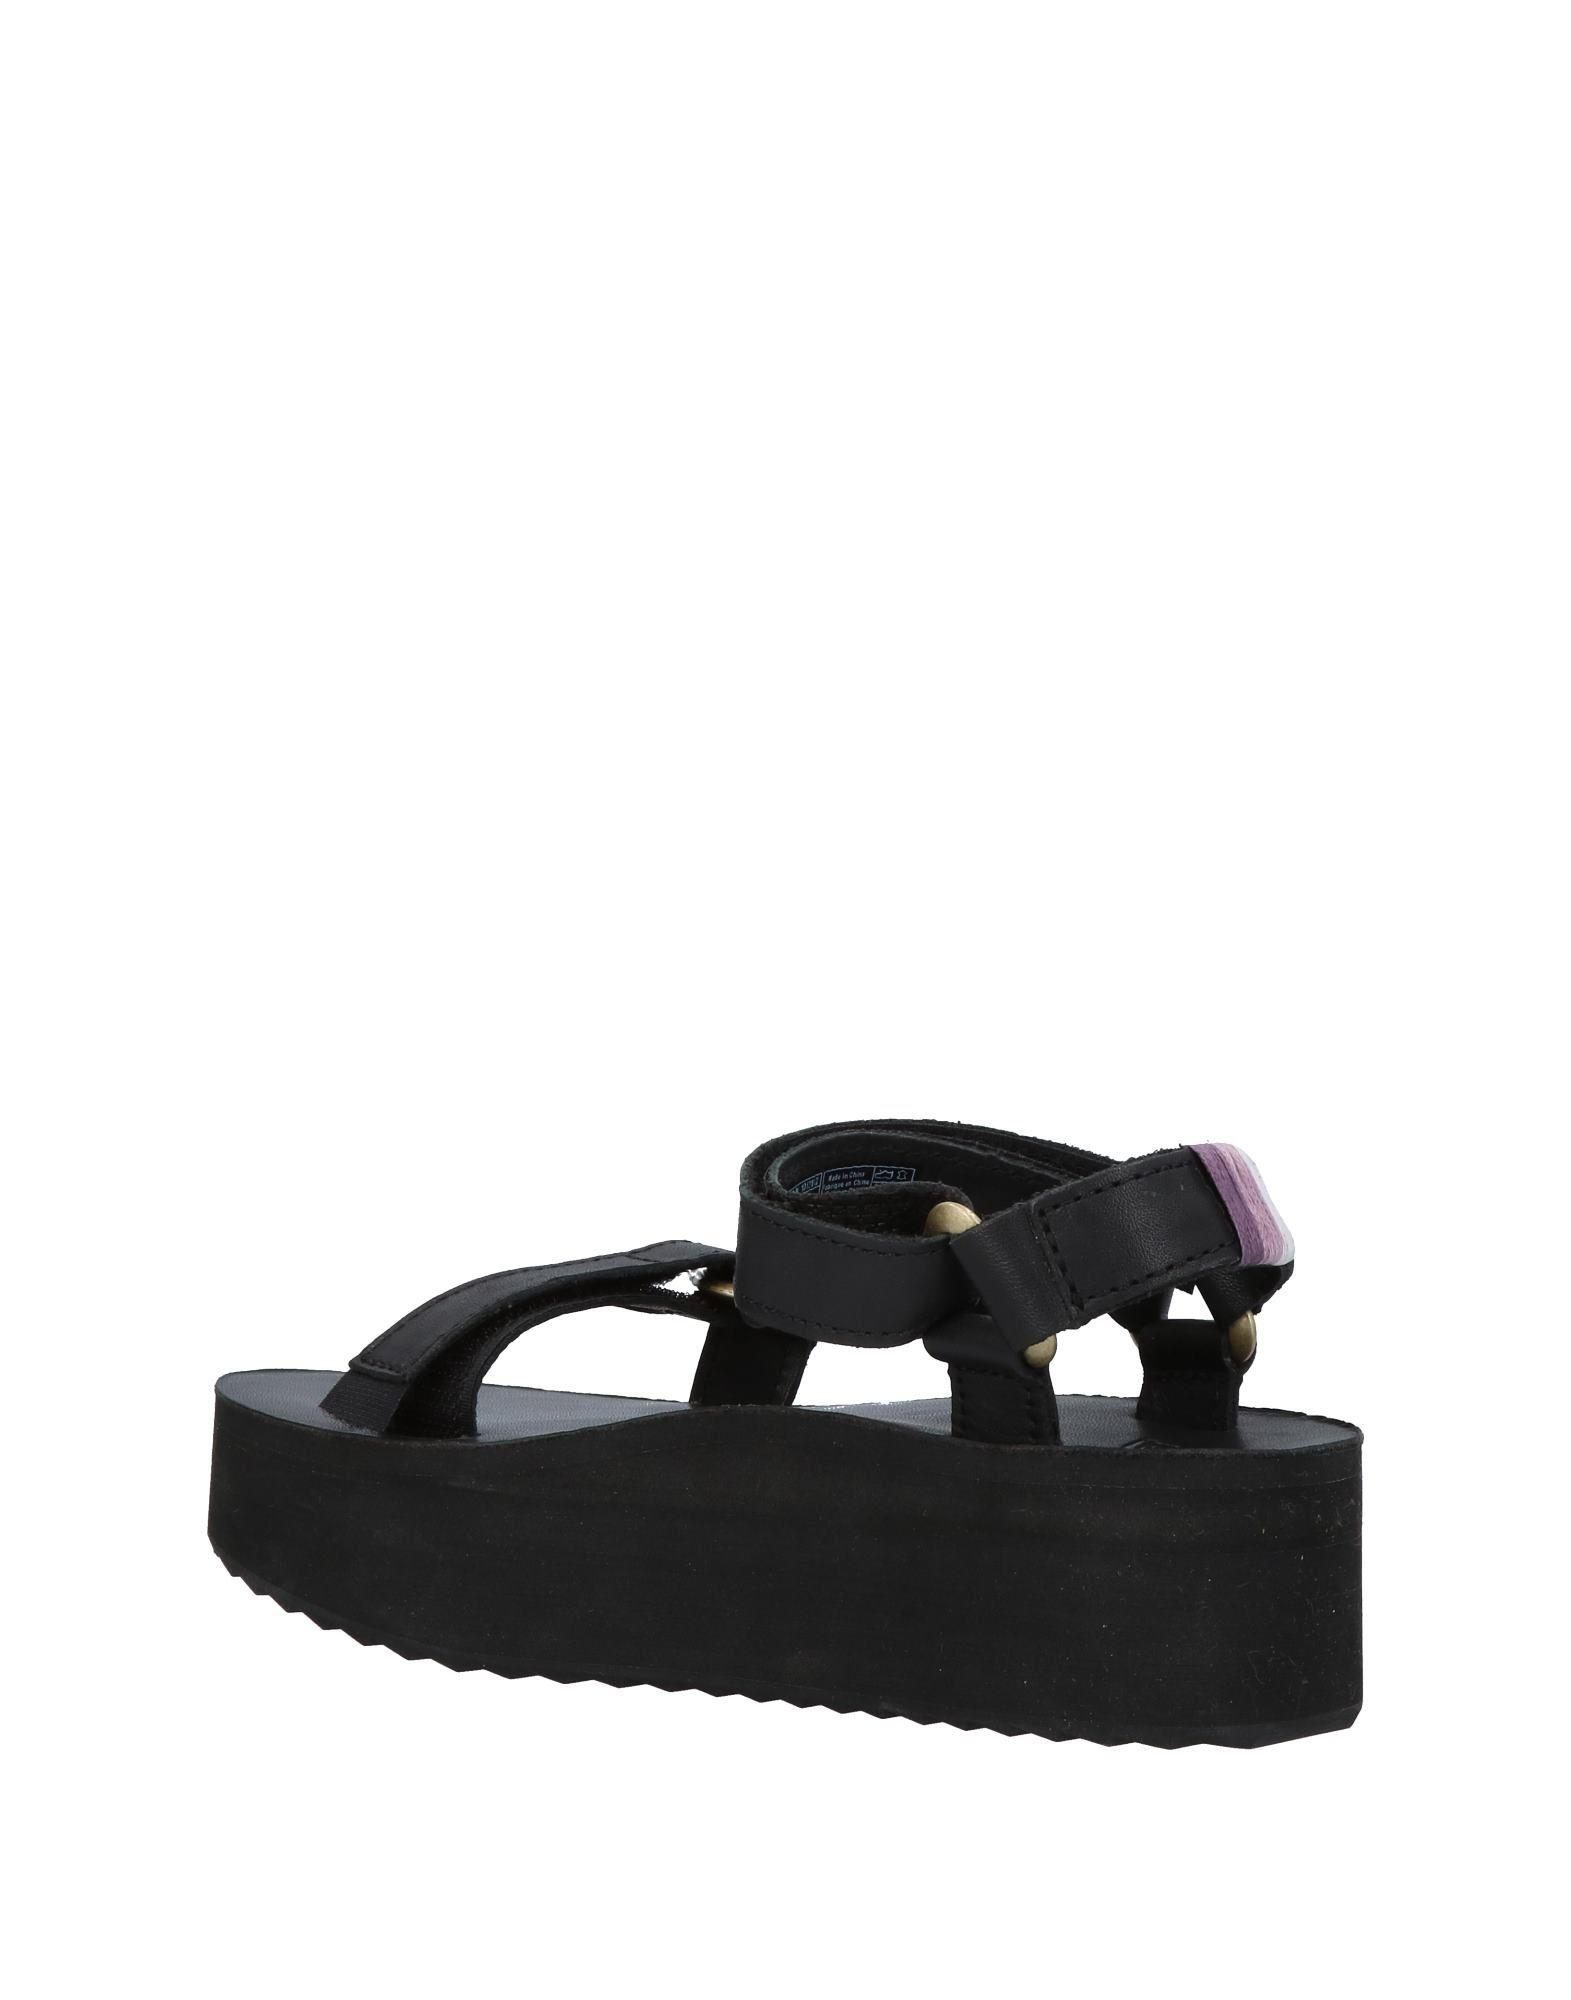 38604ef1a333 Lyst - Teva Flatform Universal Crafted in Black - Save 73%